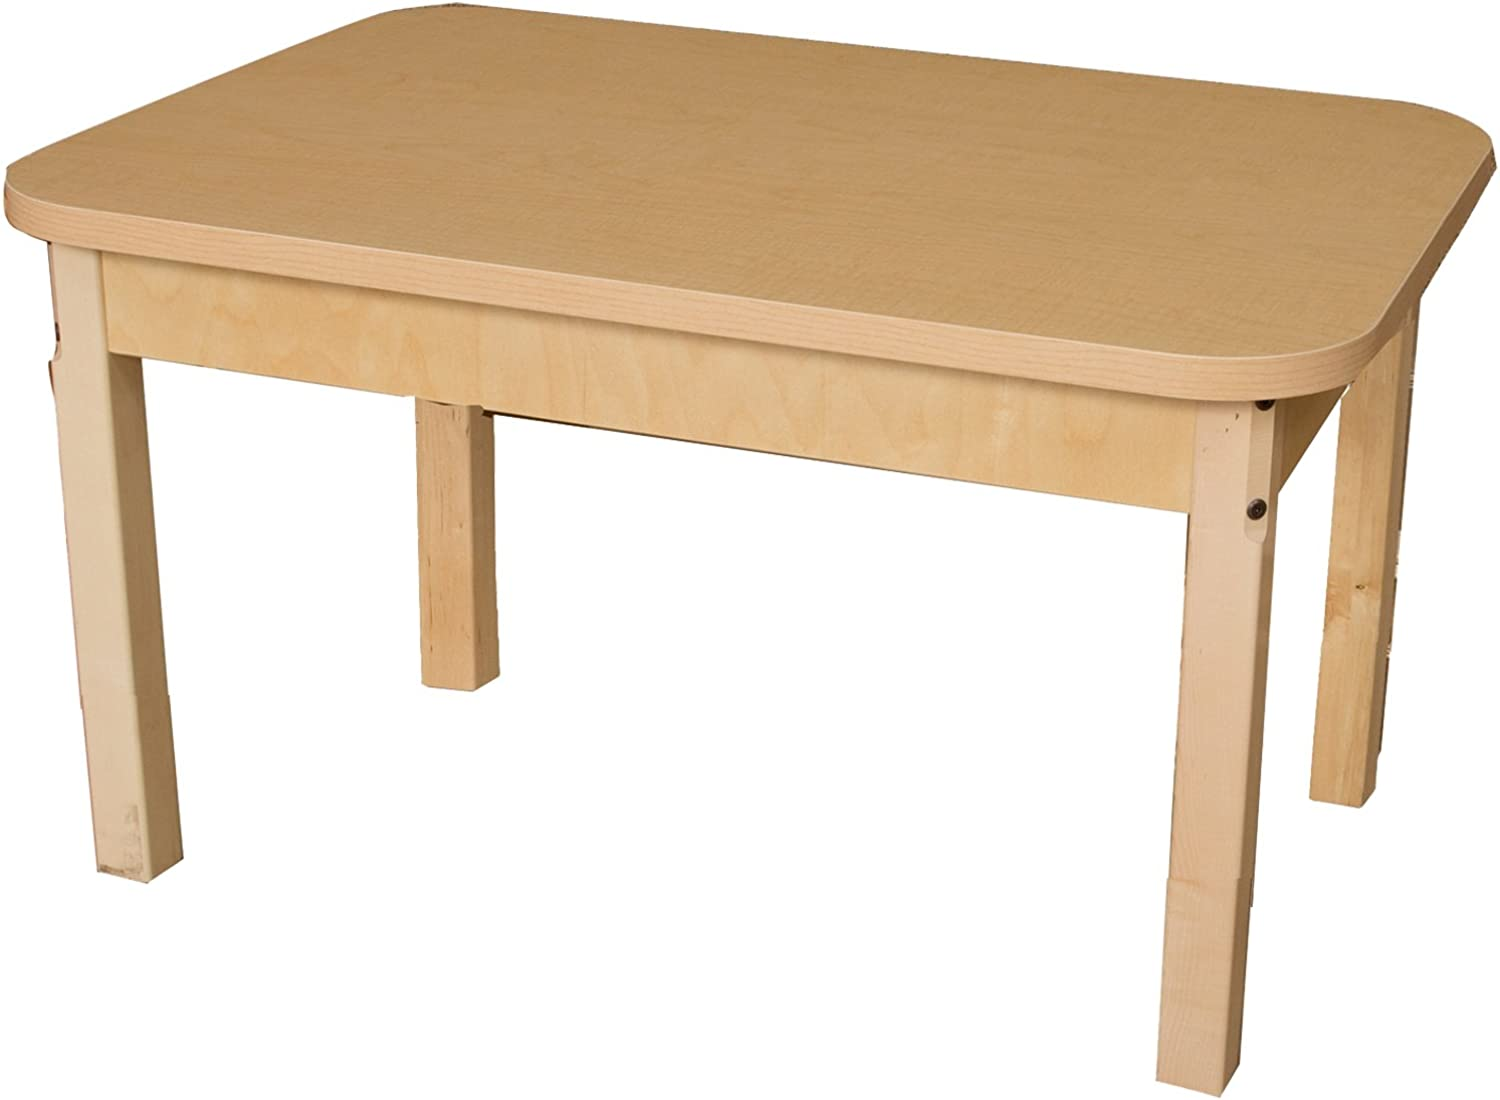 Wood Designs HPL243626 - Rectangle High Pressure Laminate Table with Hardwood Legs, 26